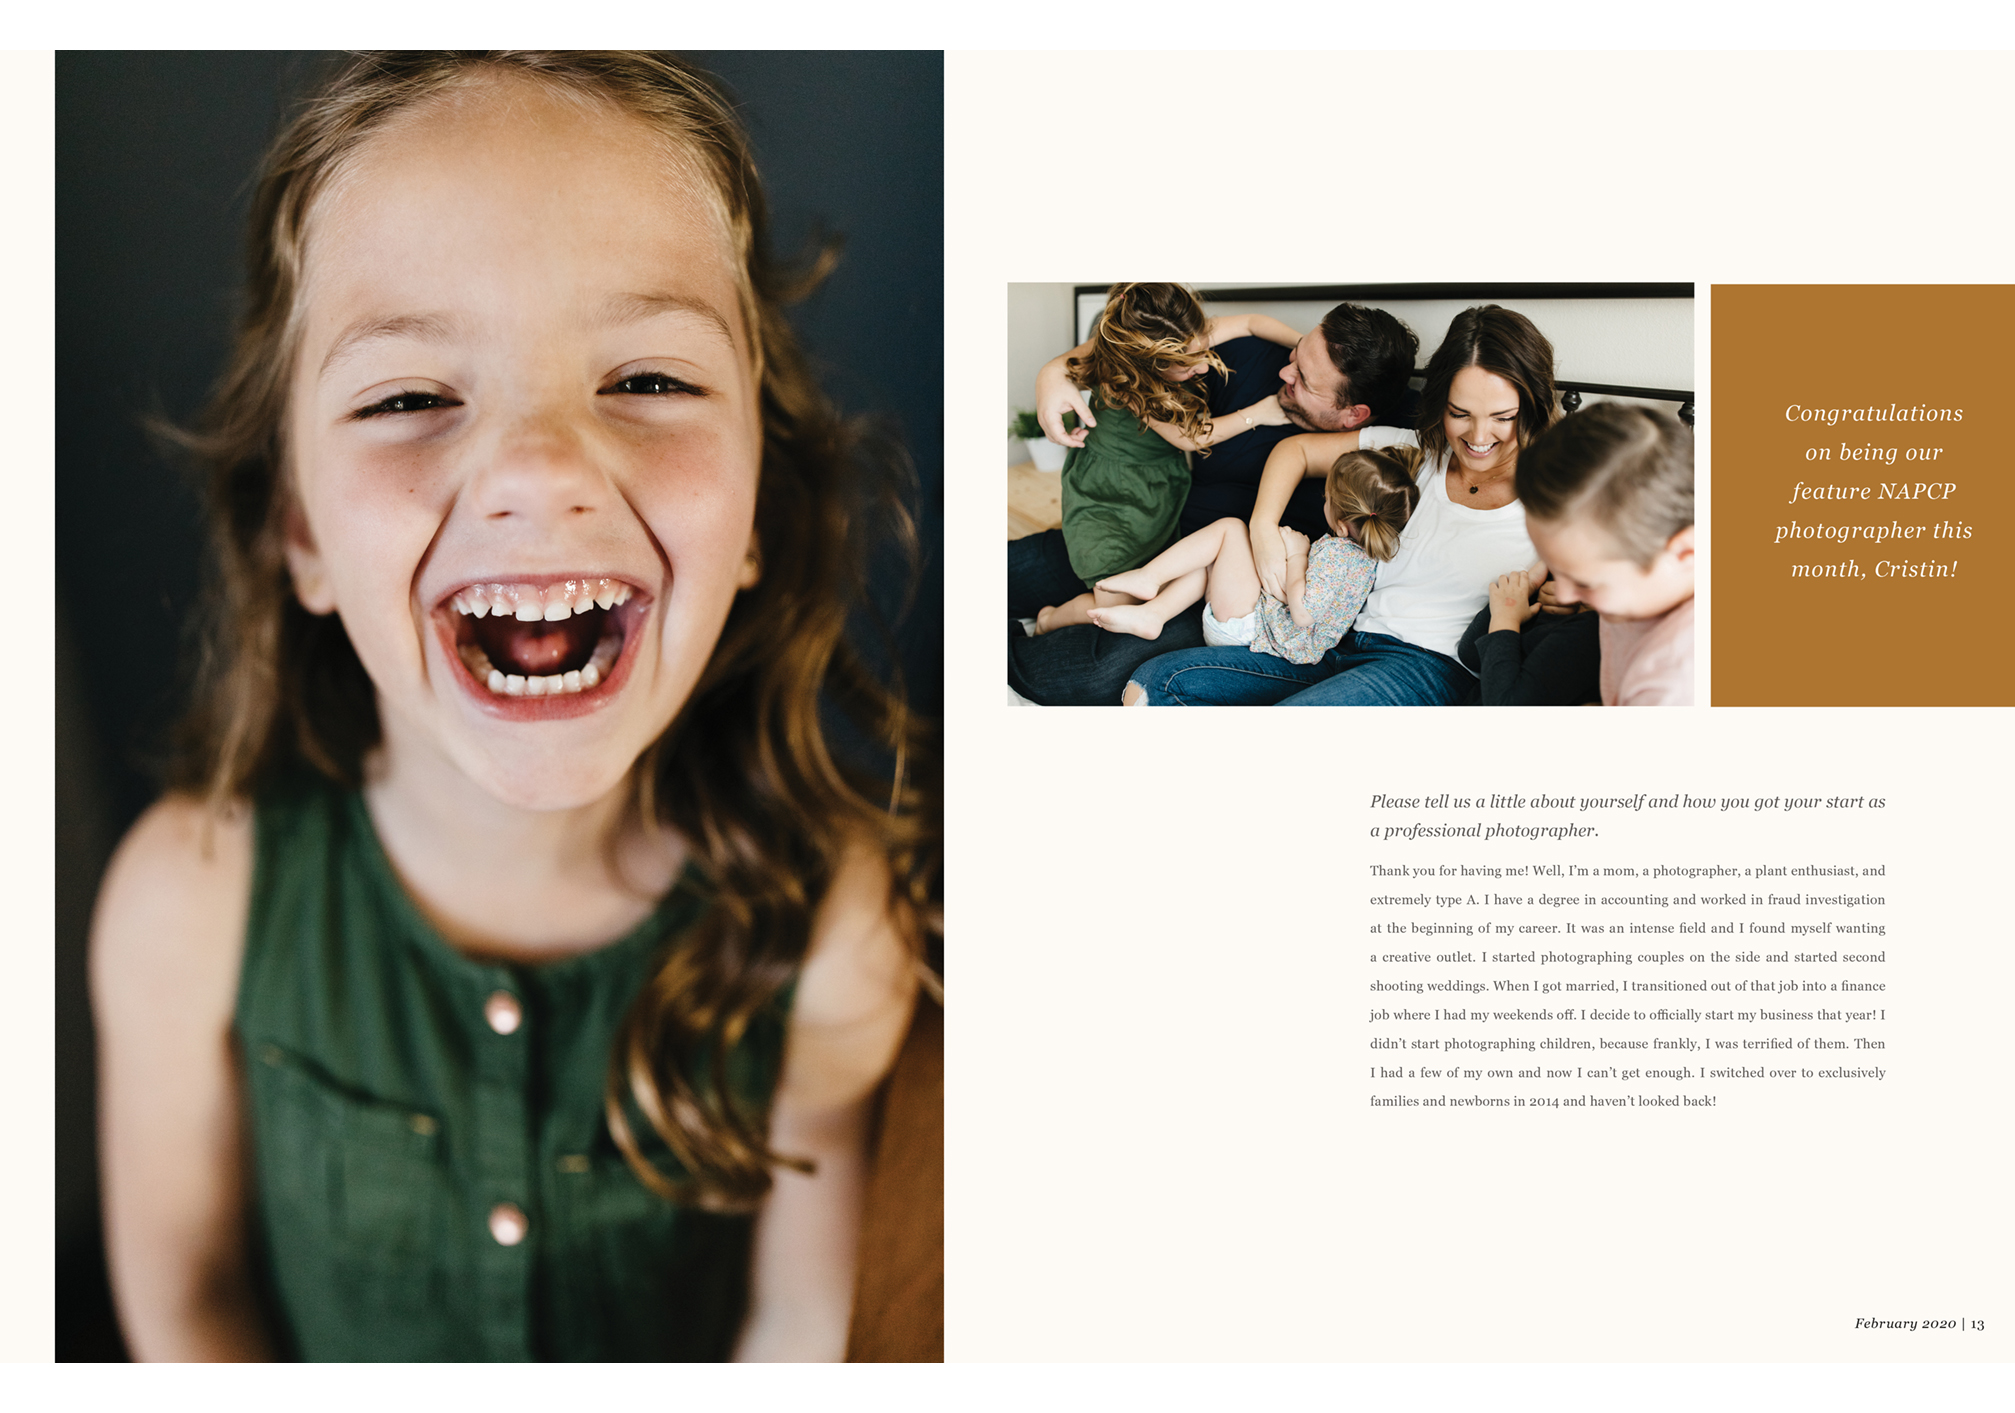 child portrait, laughing girl, family with 3 kids, Cristin More Photography interview, February 2020